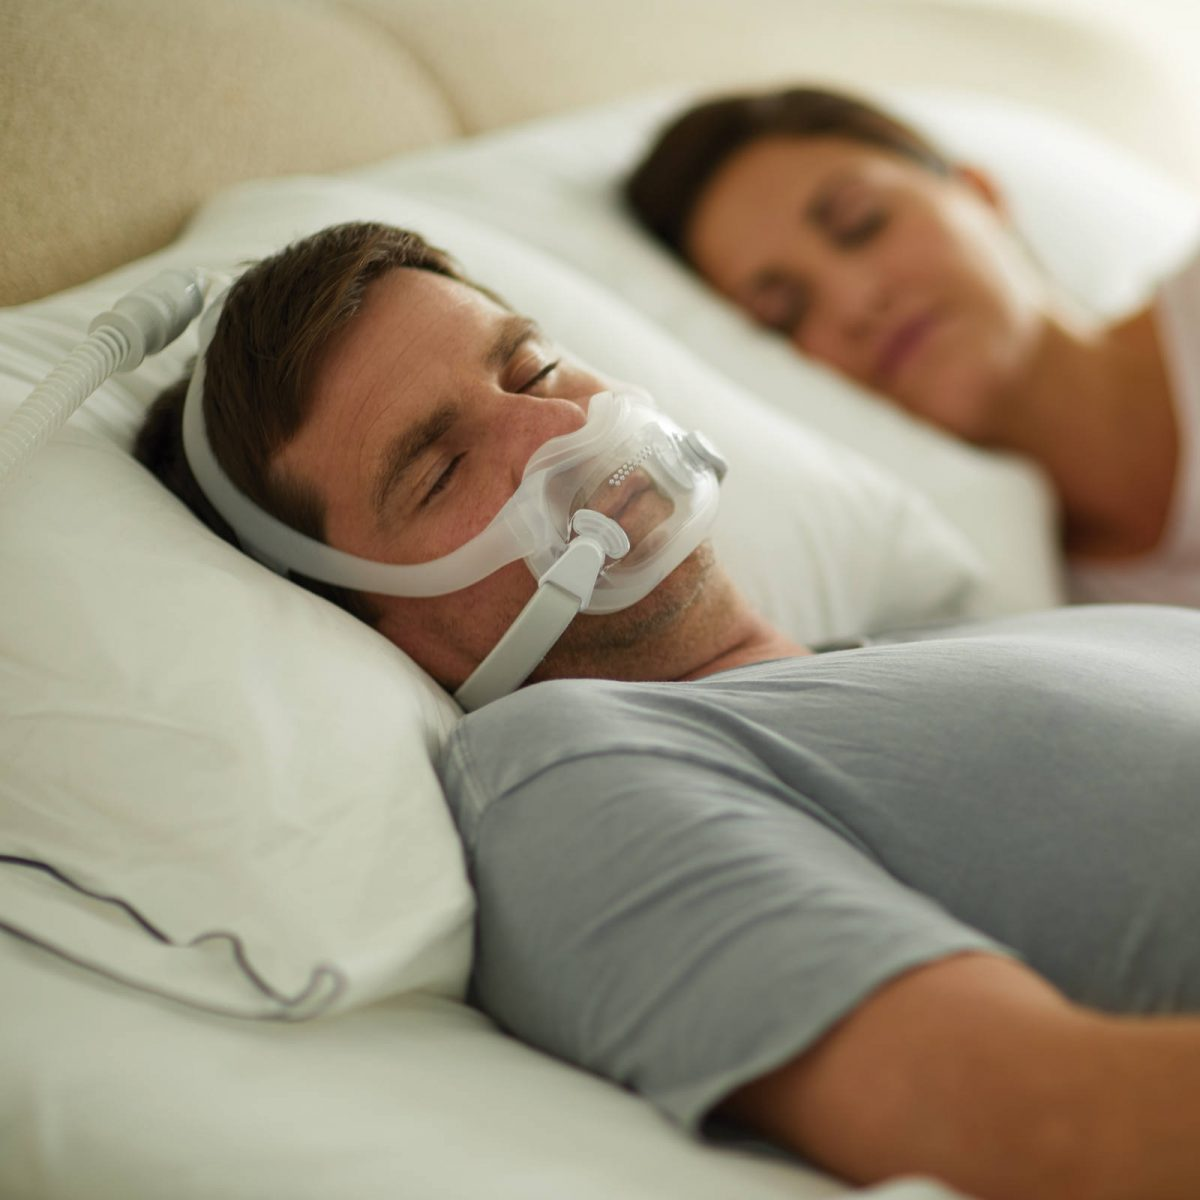 DreamWear Full Face CPAP Mask - single size